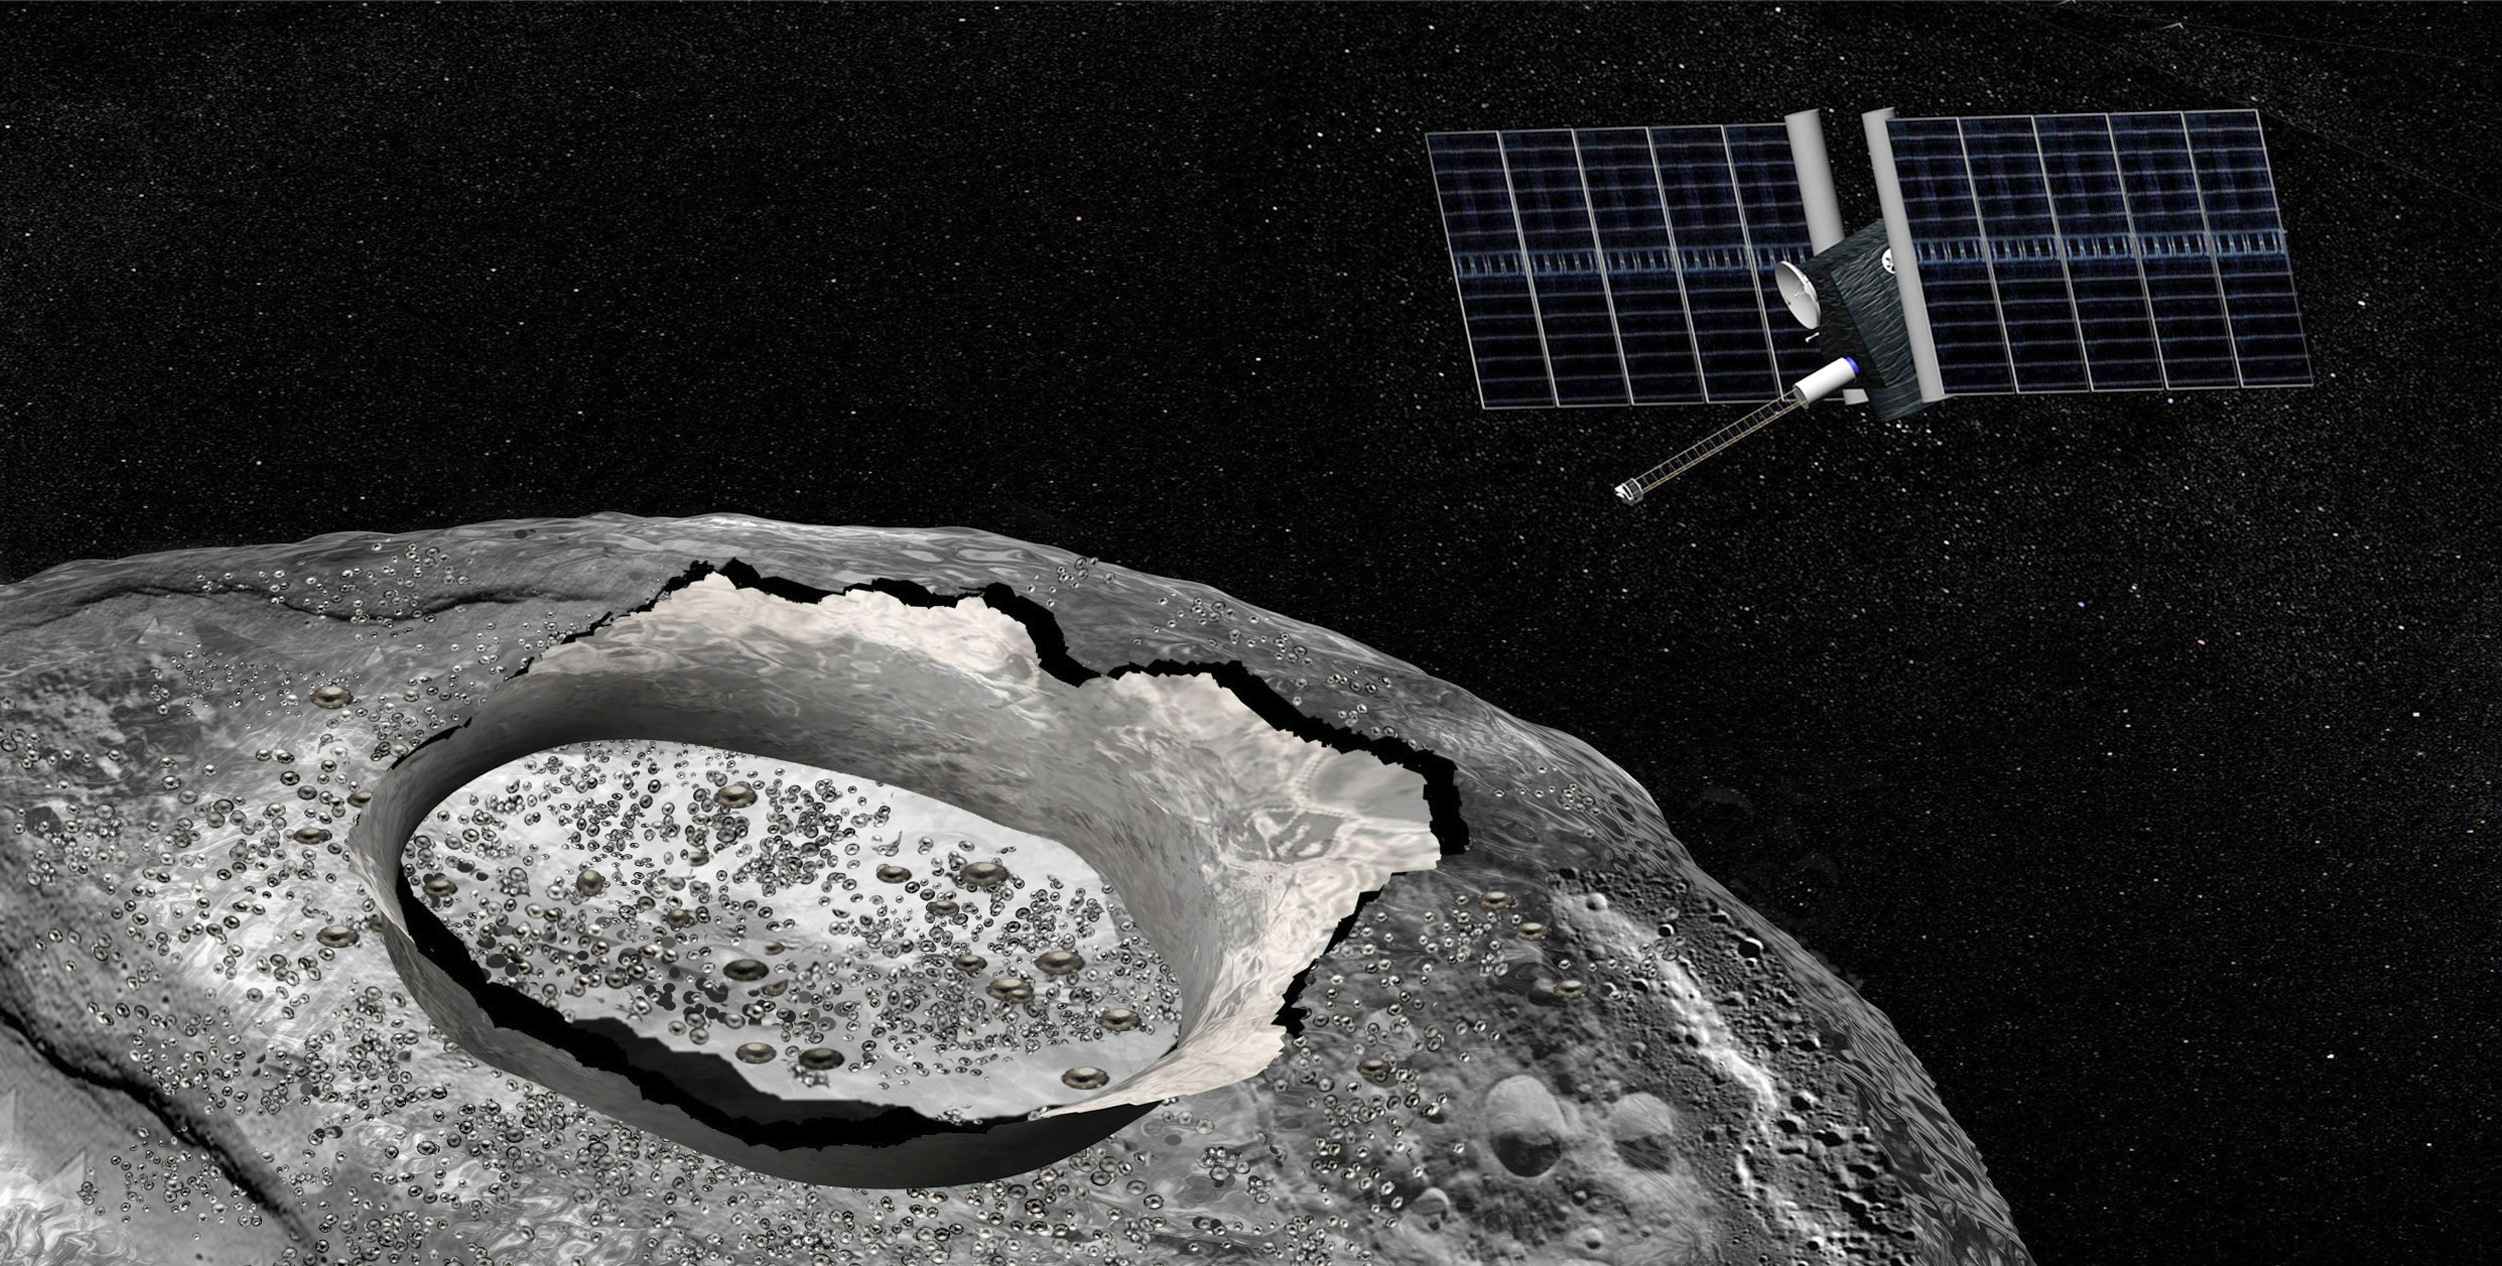 Artist's concept of the Psyche spacecraft, a proposed mission for NASA's Discovery program that would conduct a direct exploration of the 186-mile-wide nickel-iron asteroid 16 Psyche thought to be a stripped planetary core. Image credit: NASA/JPL-Caltech.